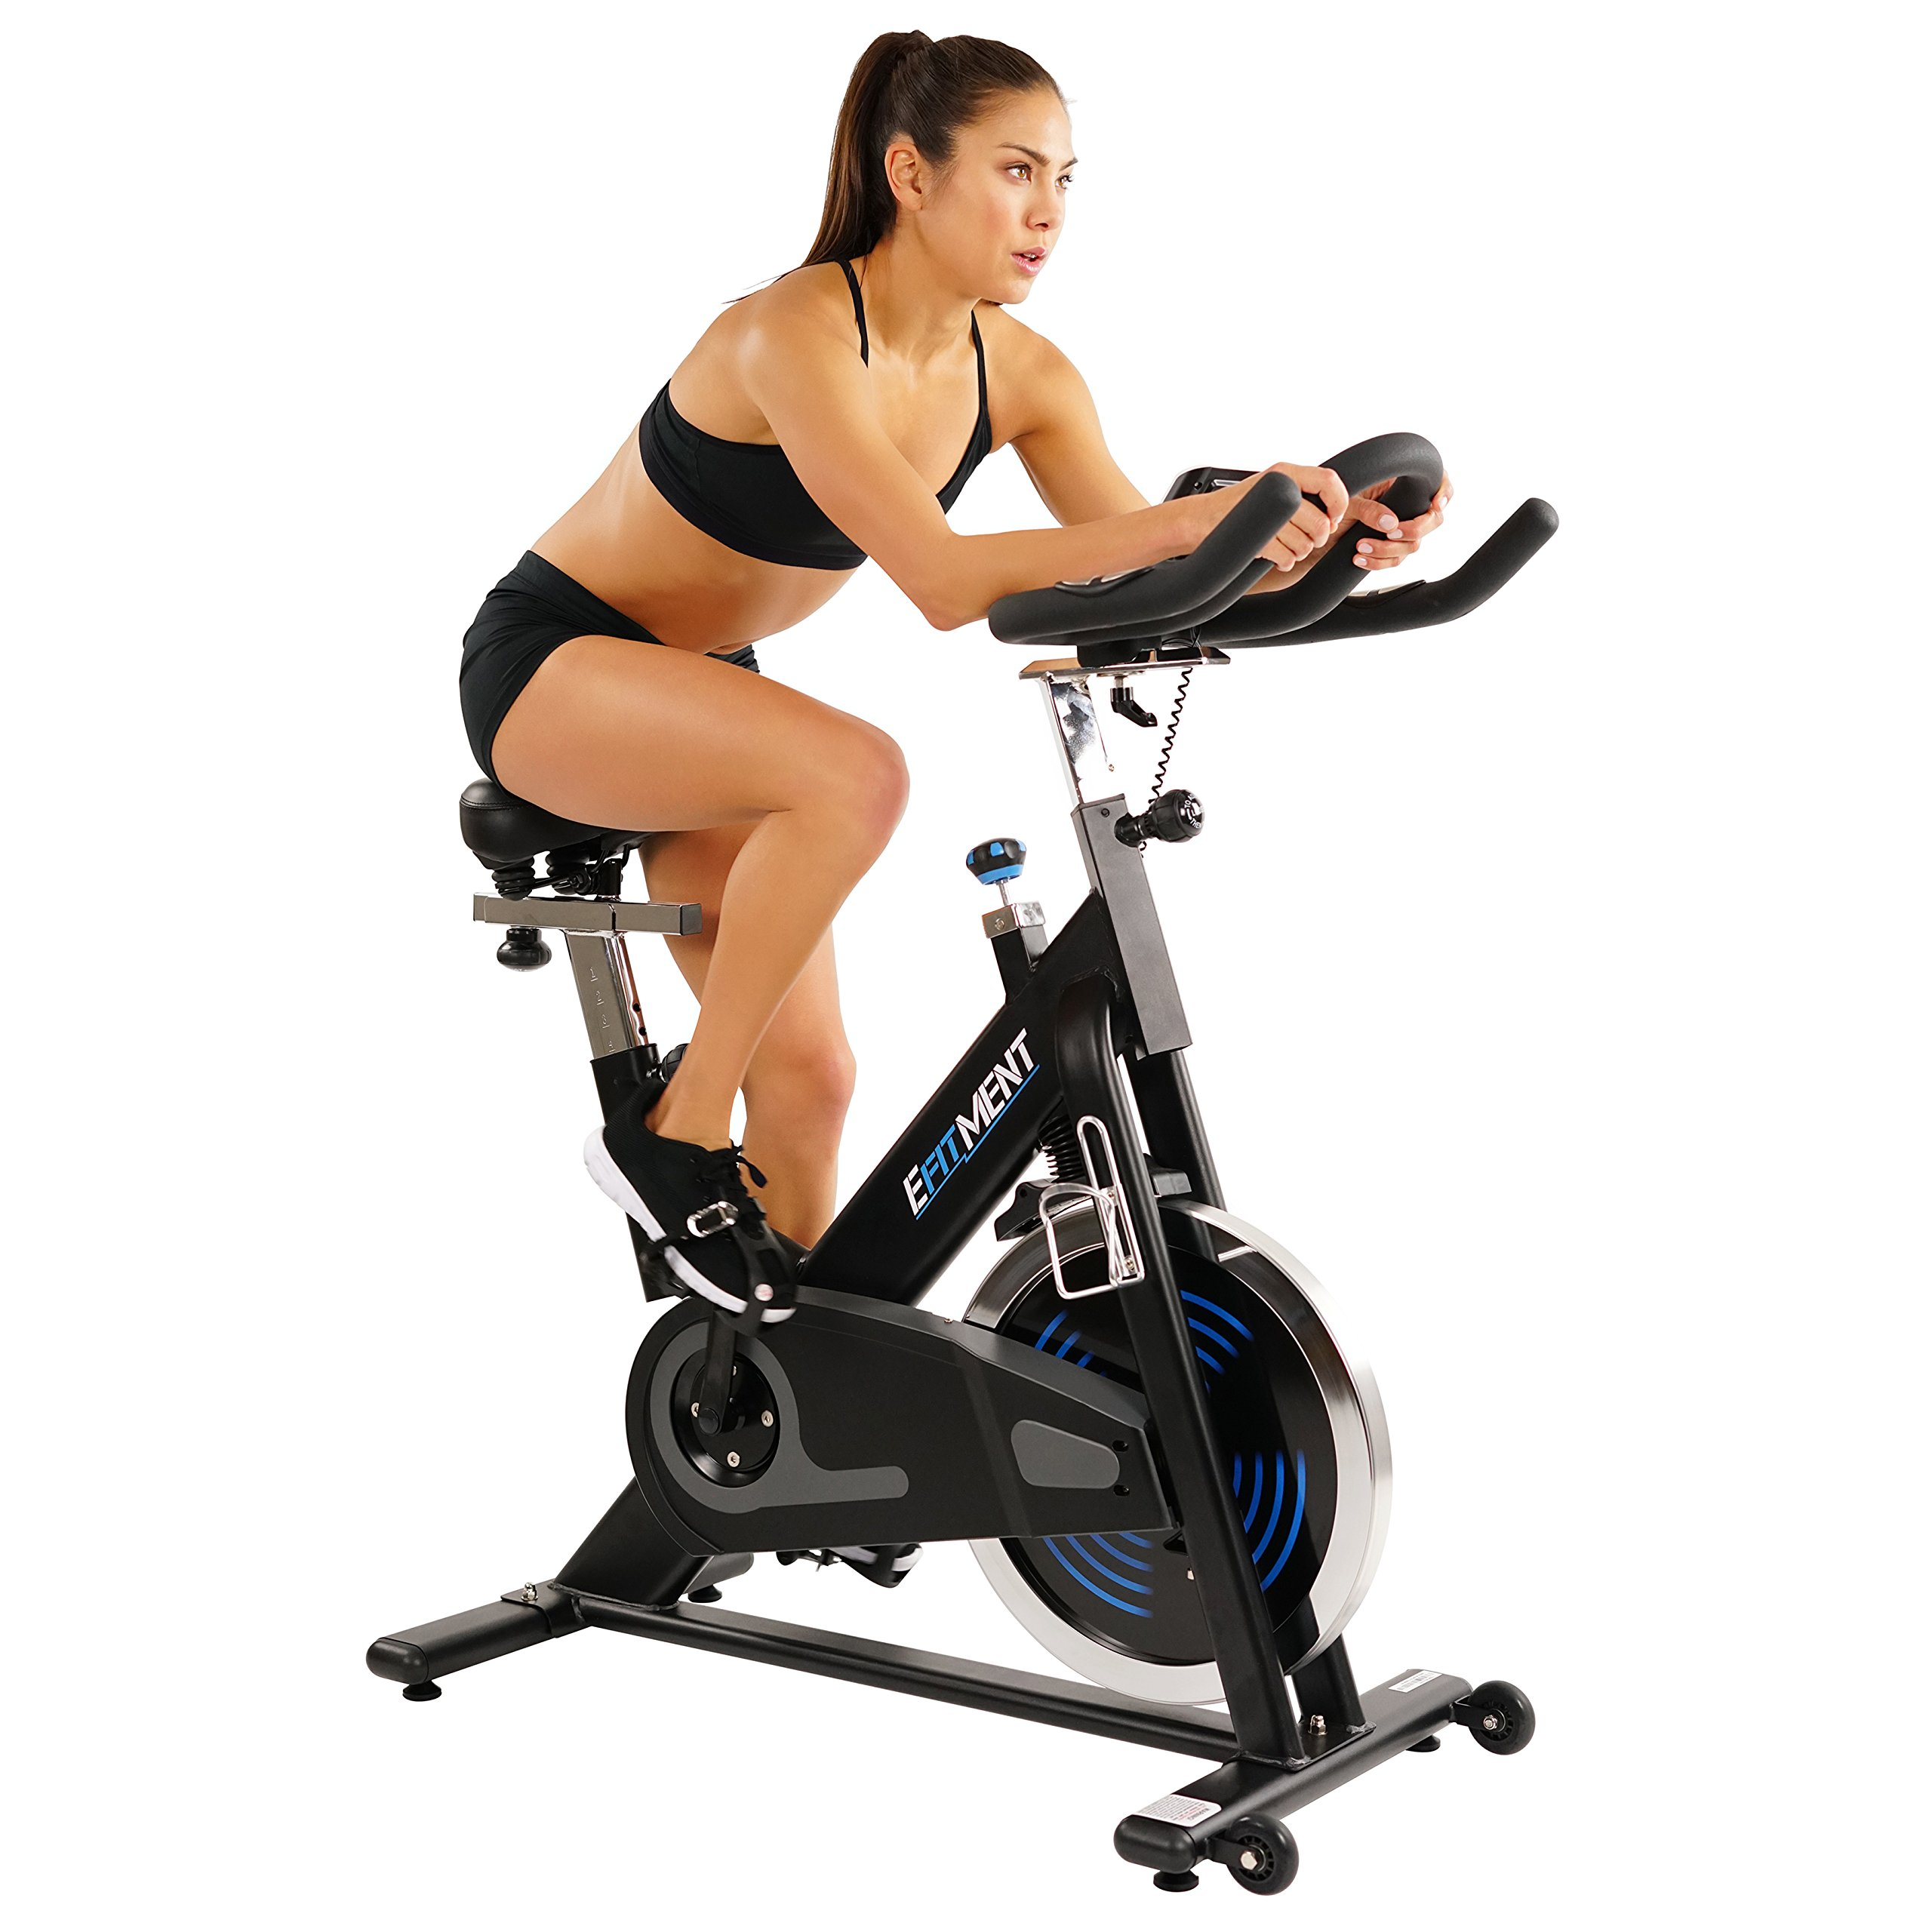 EFITMENT Magnetic Cycling Exercise Flywheel